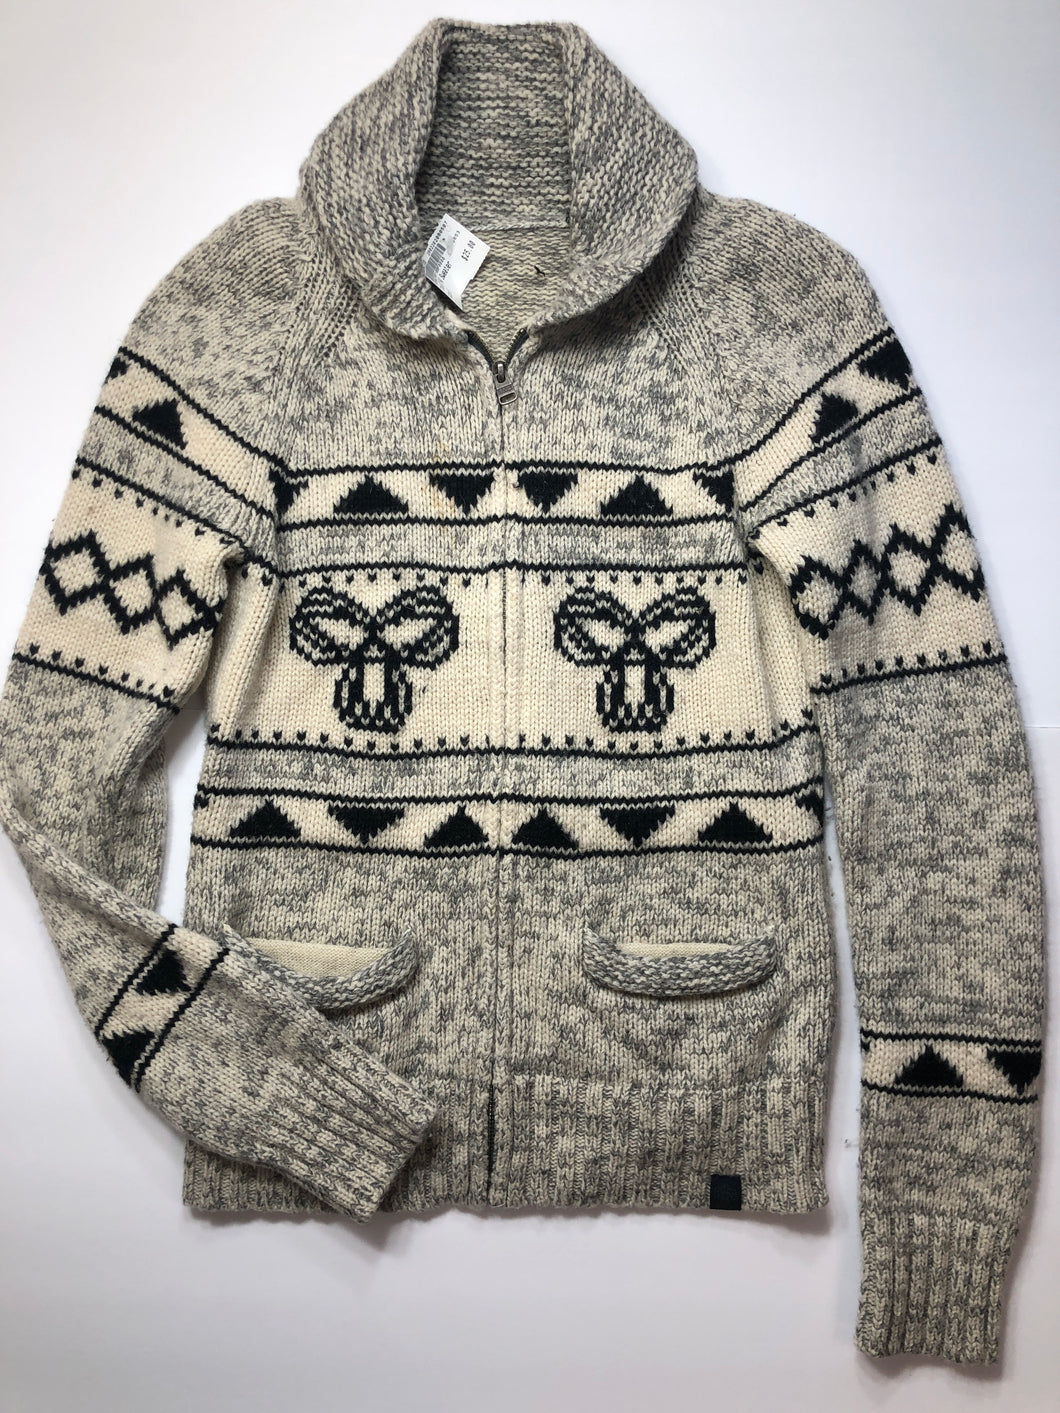 Gently Used Women's TNA Sweater Size S